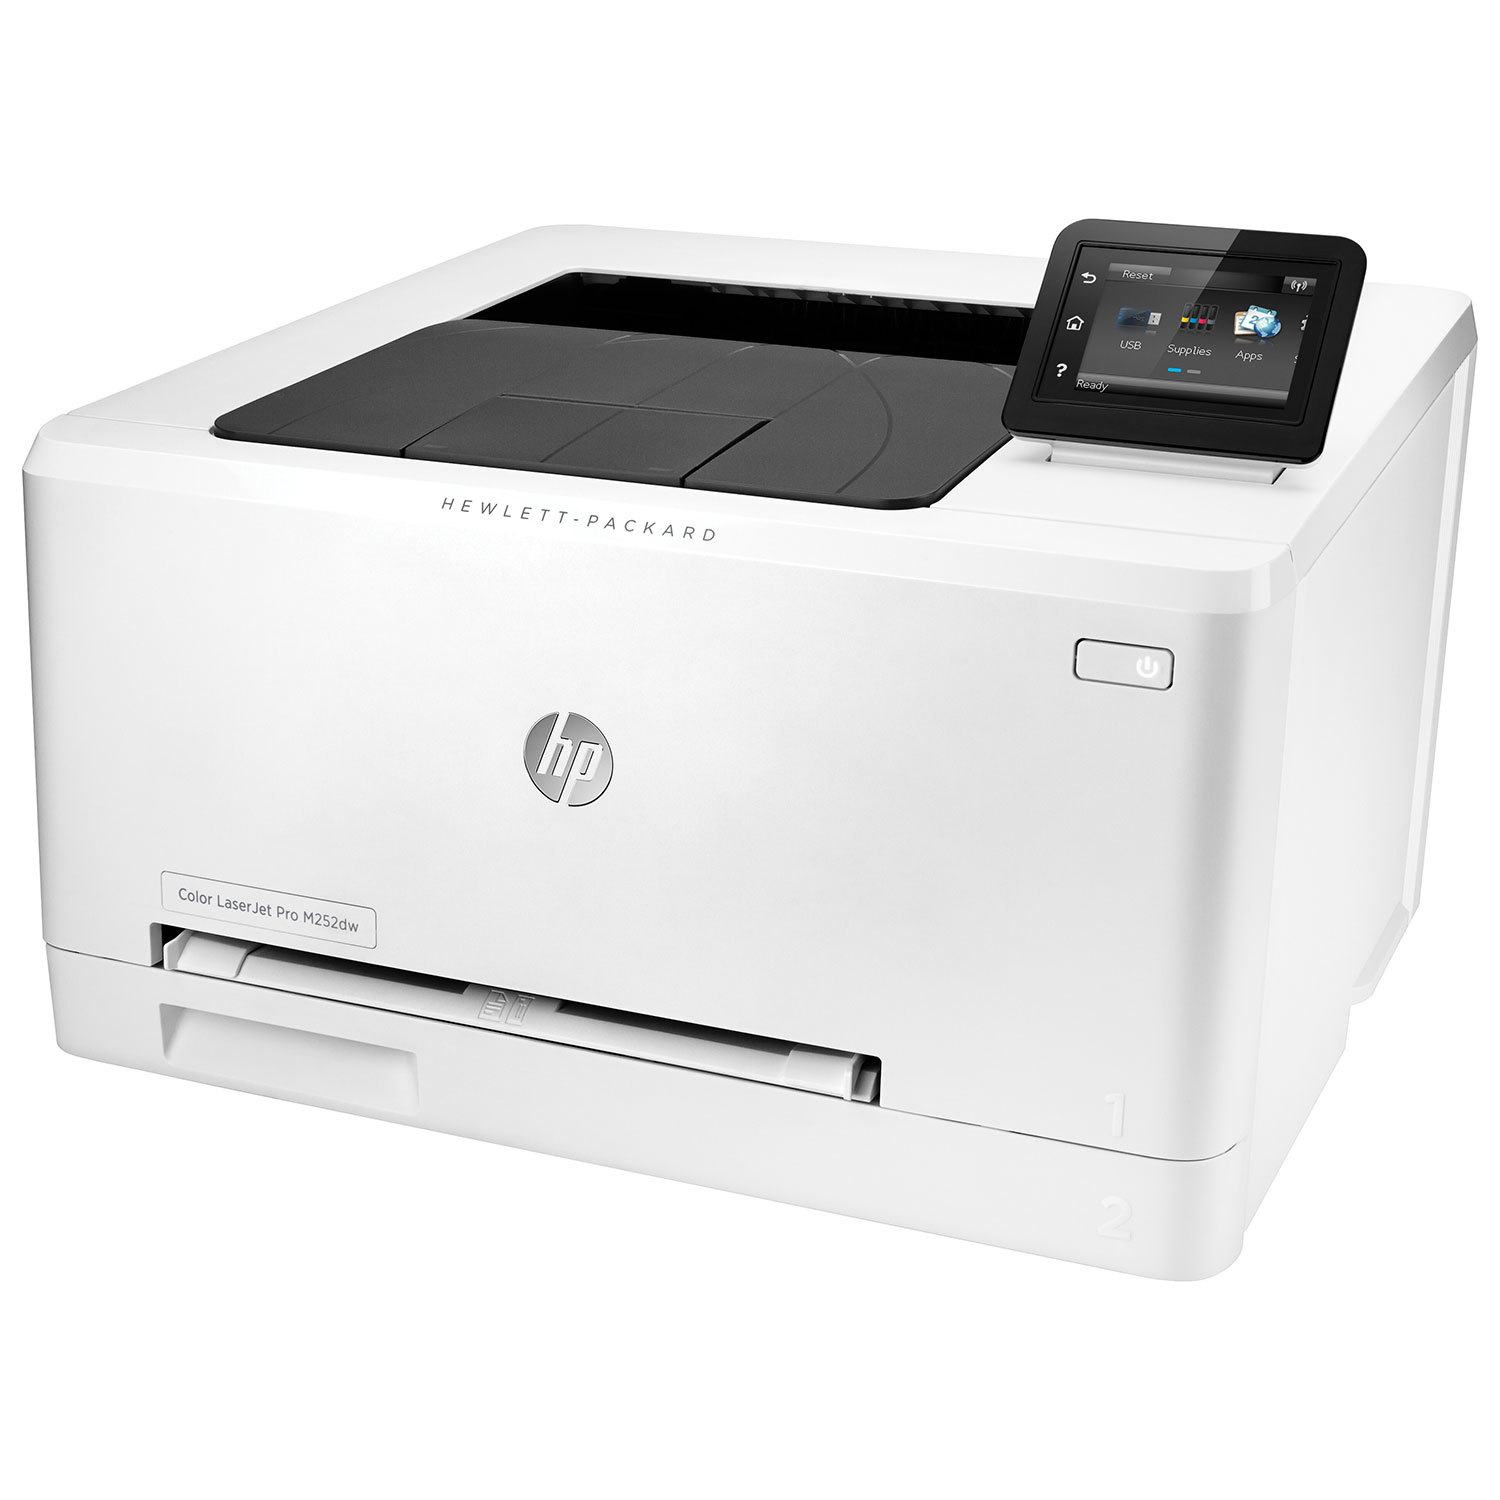 hp laserjet pro colour laser printer m252dw laser printers